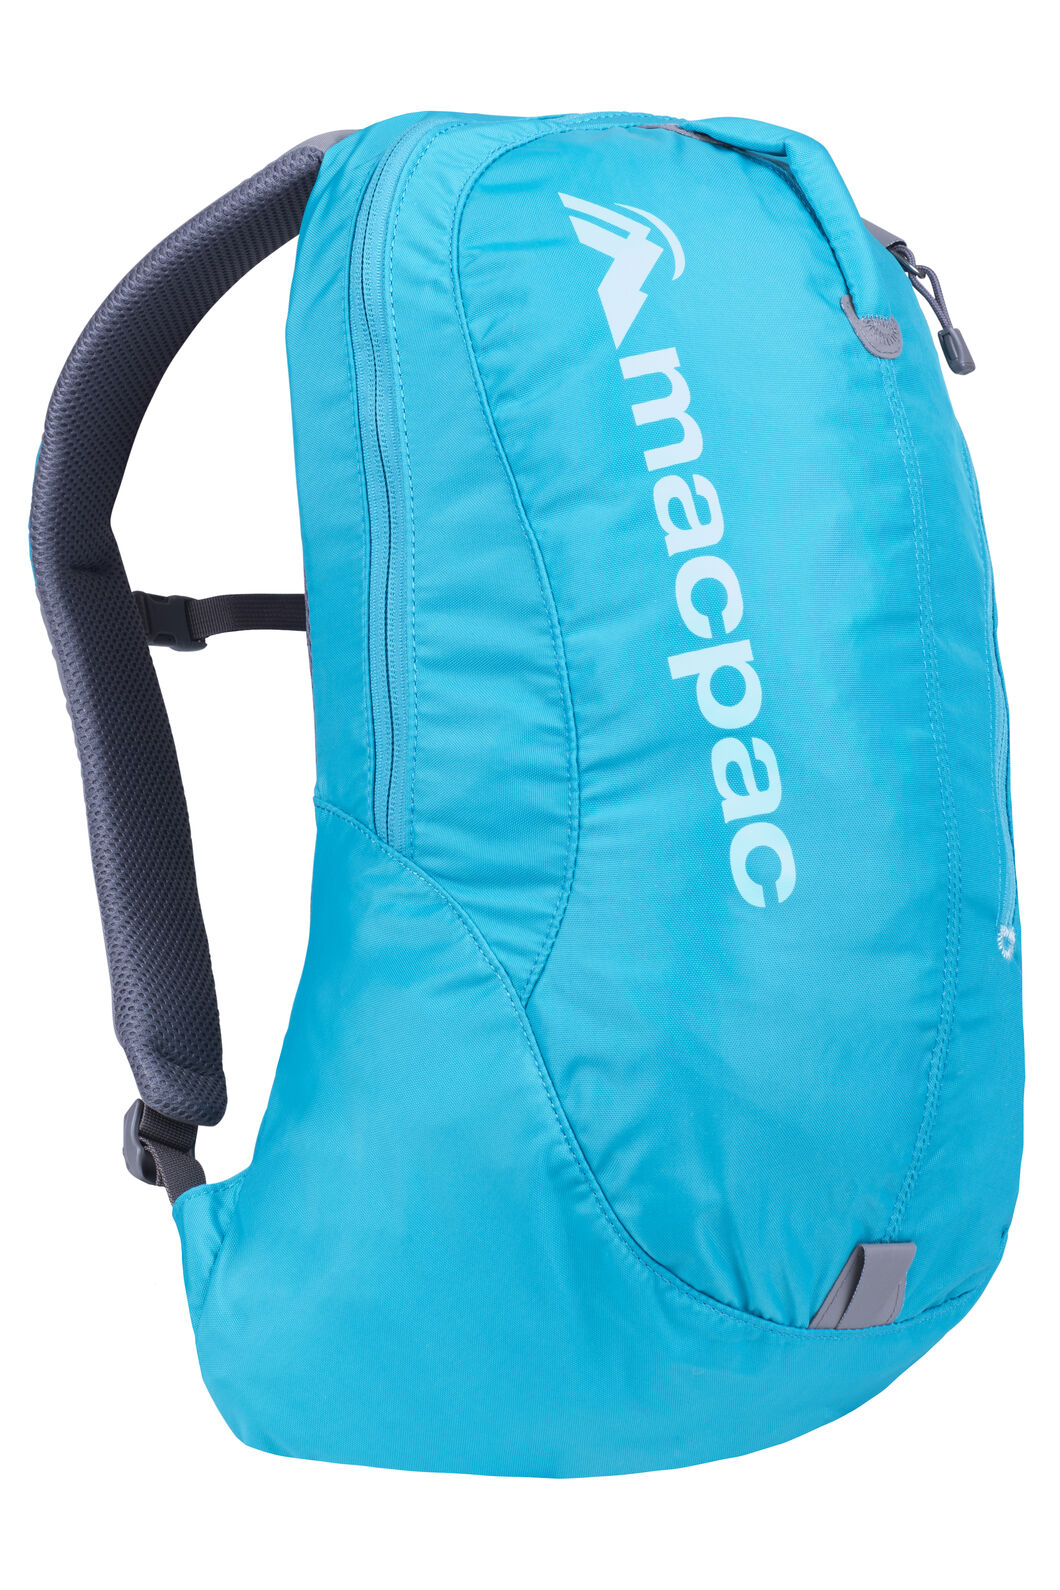 Macpac Kahuna 1.1 18L Backpack, Enamel Blue, hi-res